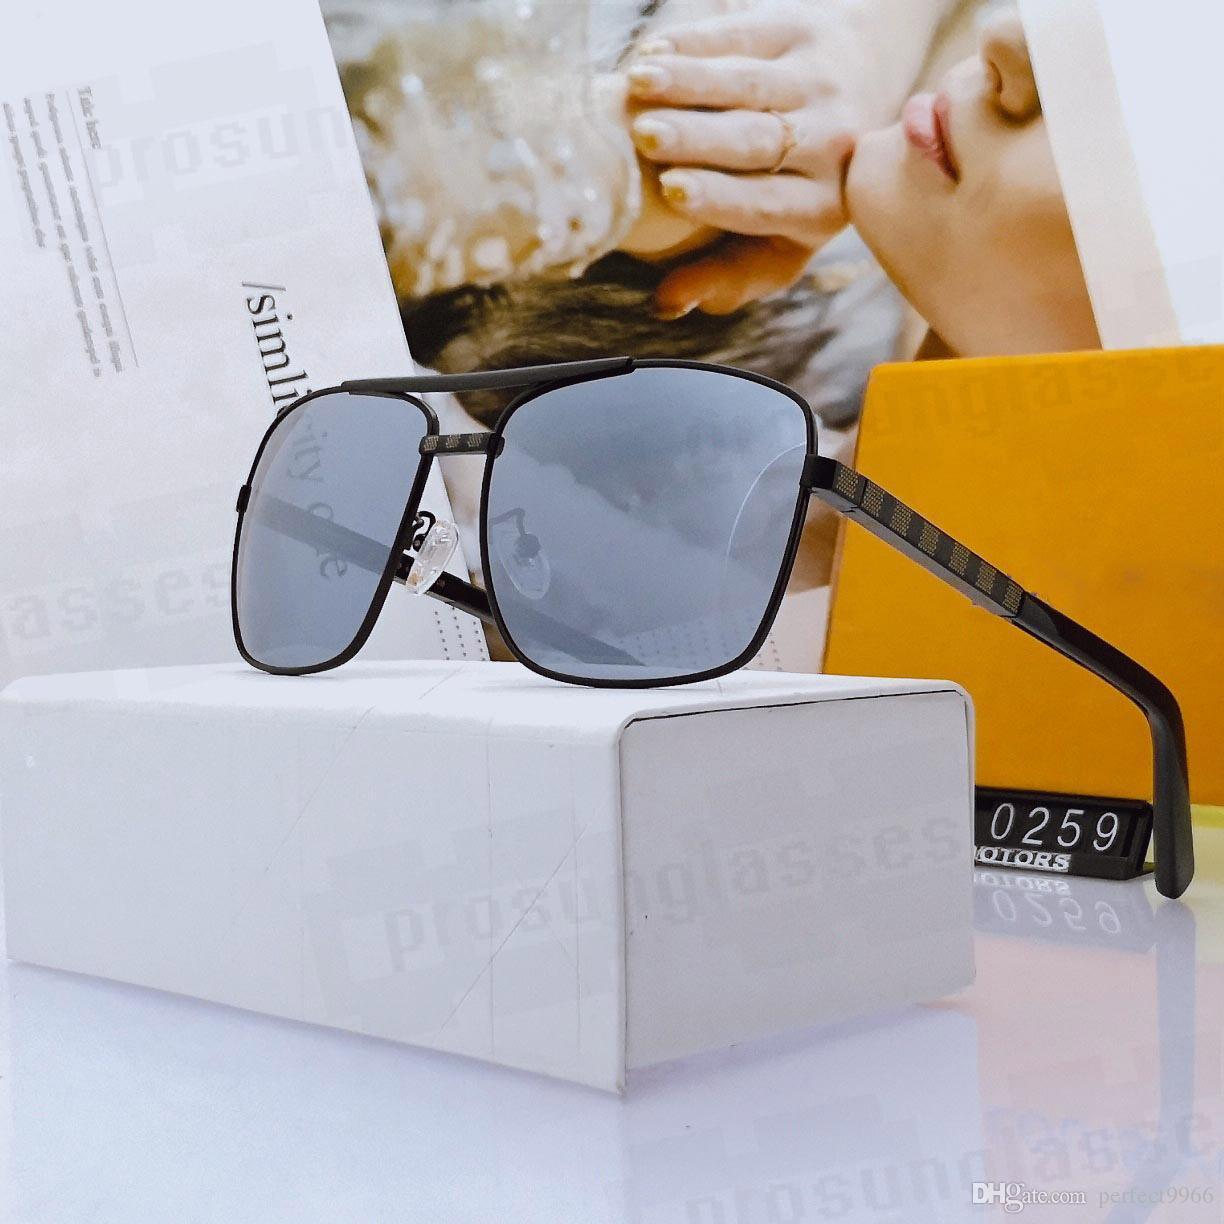 2020 New Fashion Desinger Sunglasses Attitude Attitude Occhiali da sole Donne Occhiali da sole Desiger Top Quality 0259